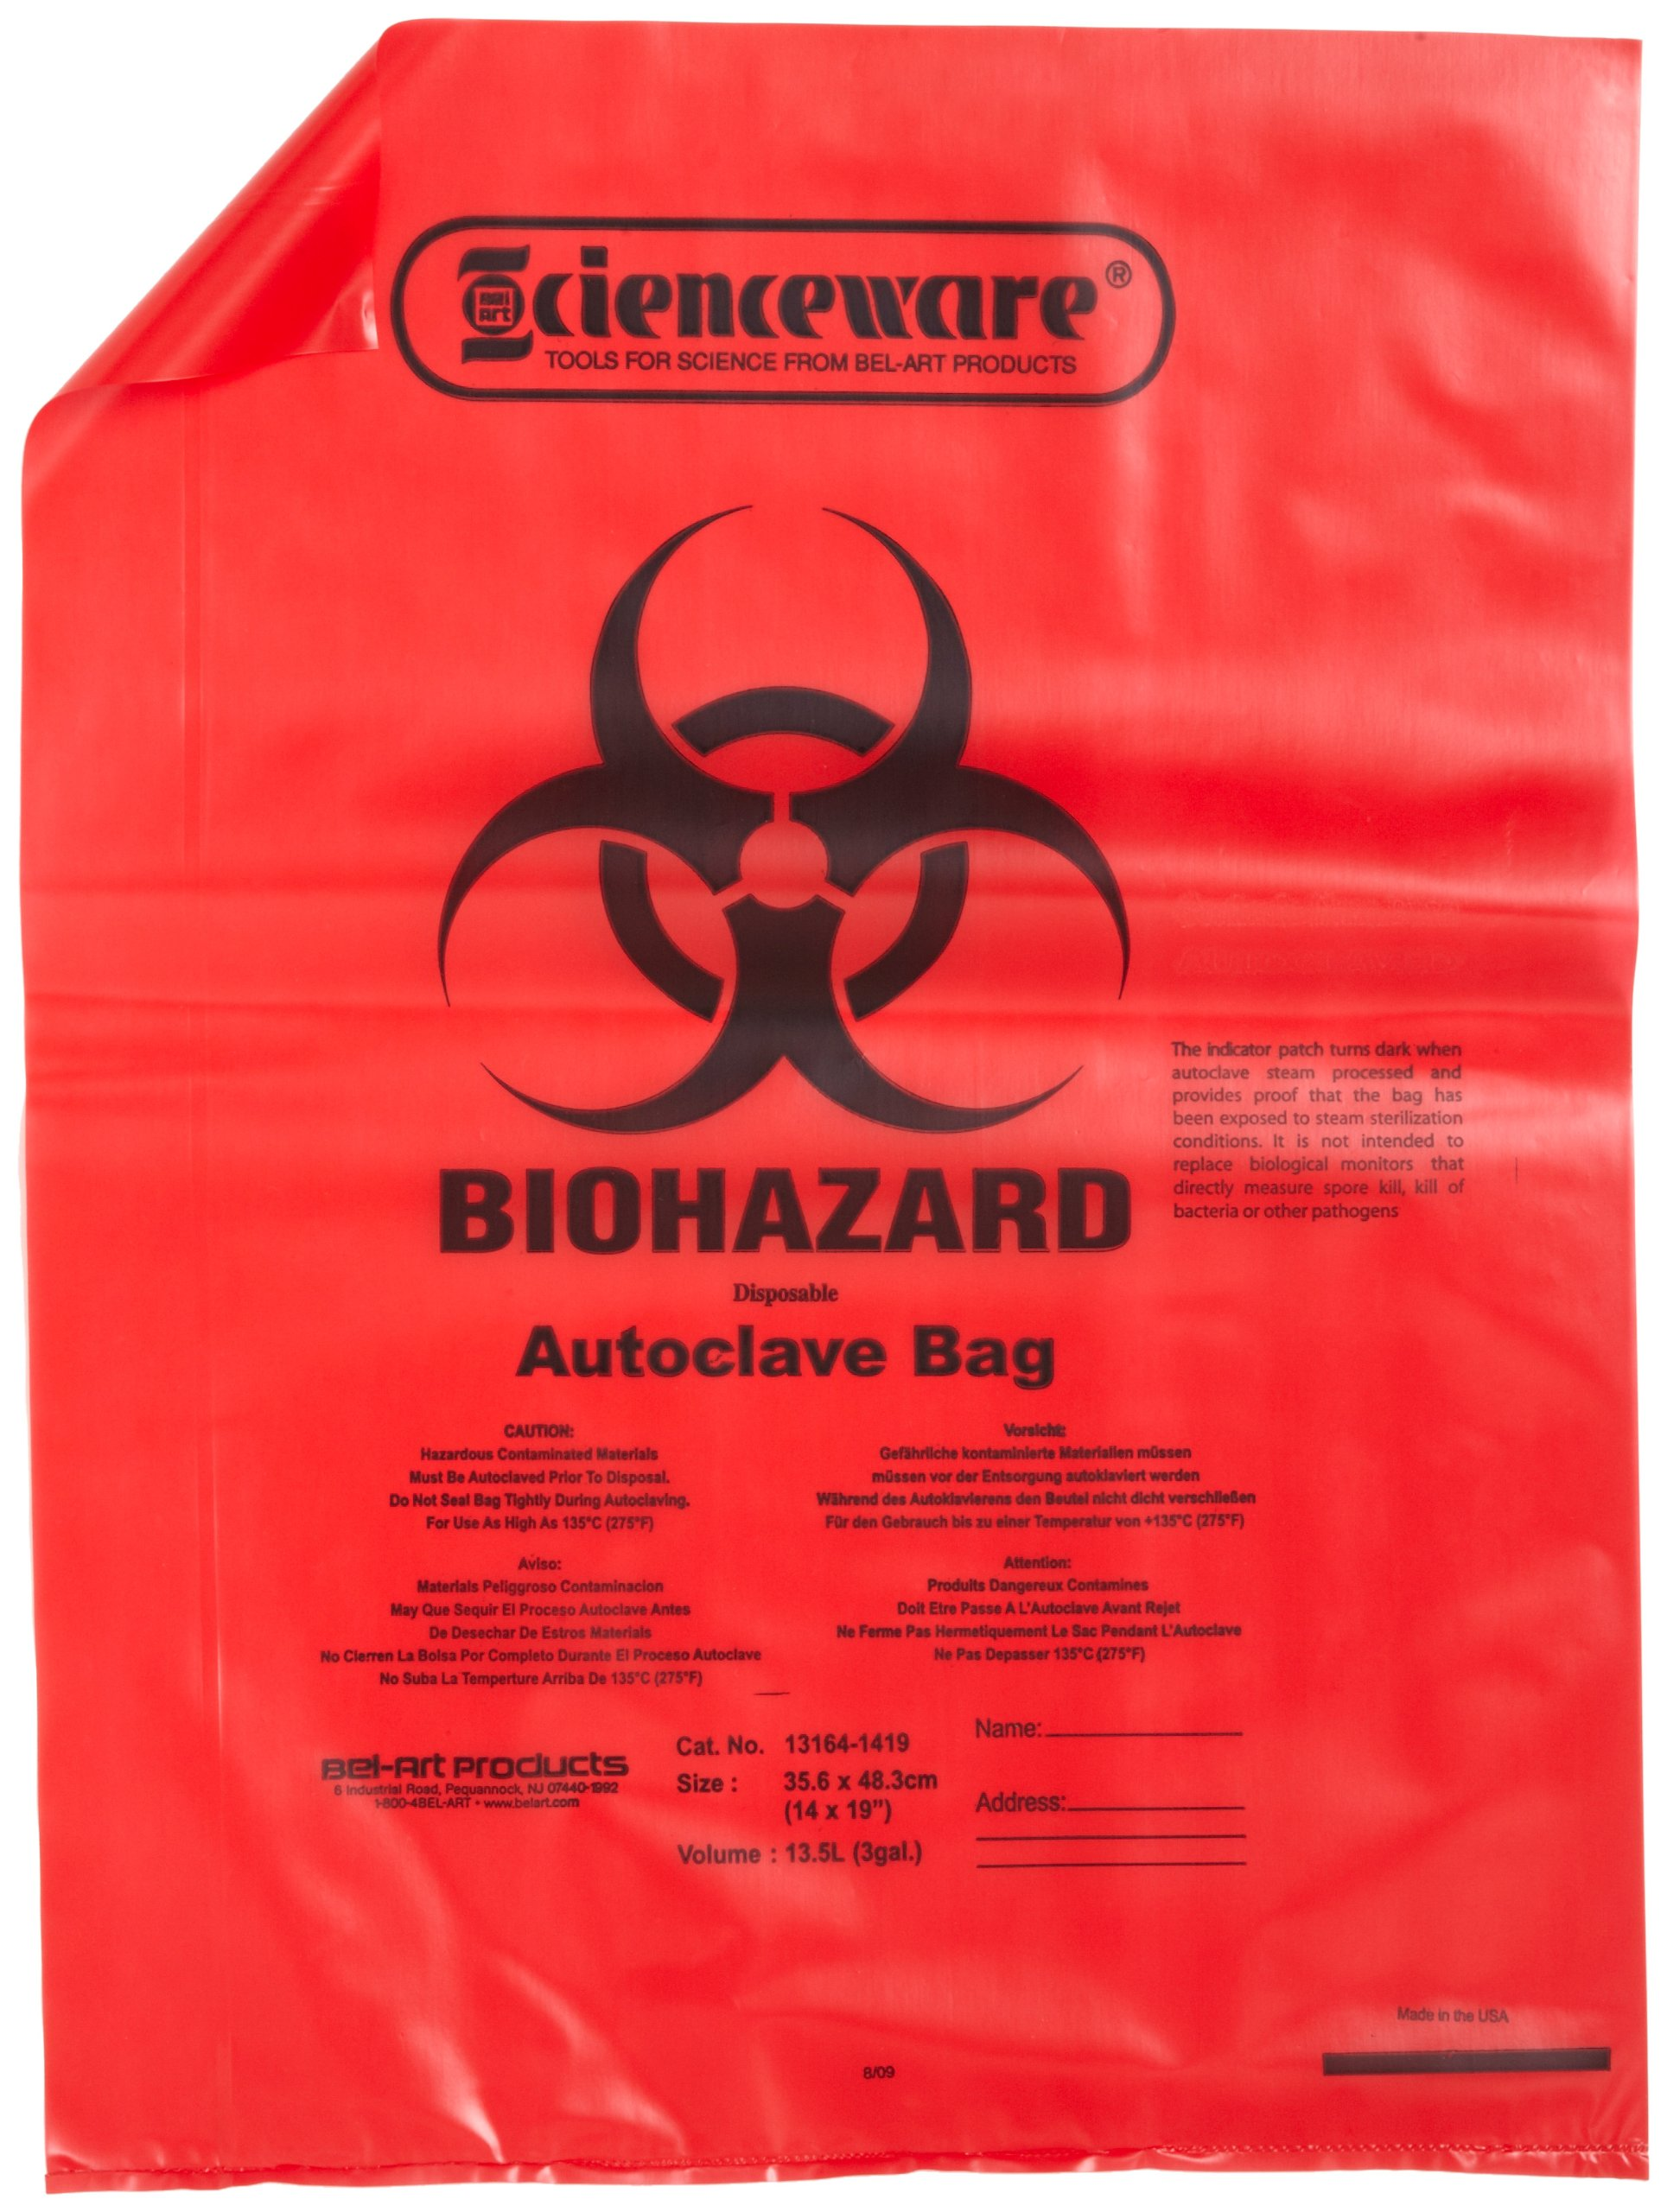 Bel-Art F13164-1419 Polypropylene 2-4 Gallon Red Biohazard Disposal Bags with Warning Label/Sterilization Indicator, 14W x 19 in. H, 1.5mil Thick (Pack of 200) by SP Scienceware